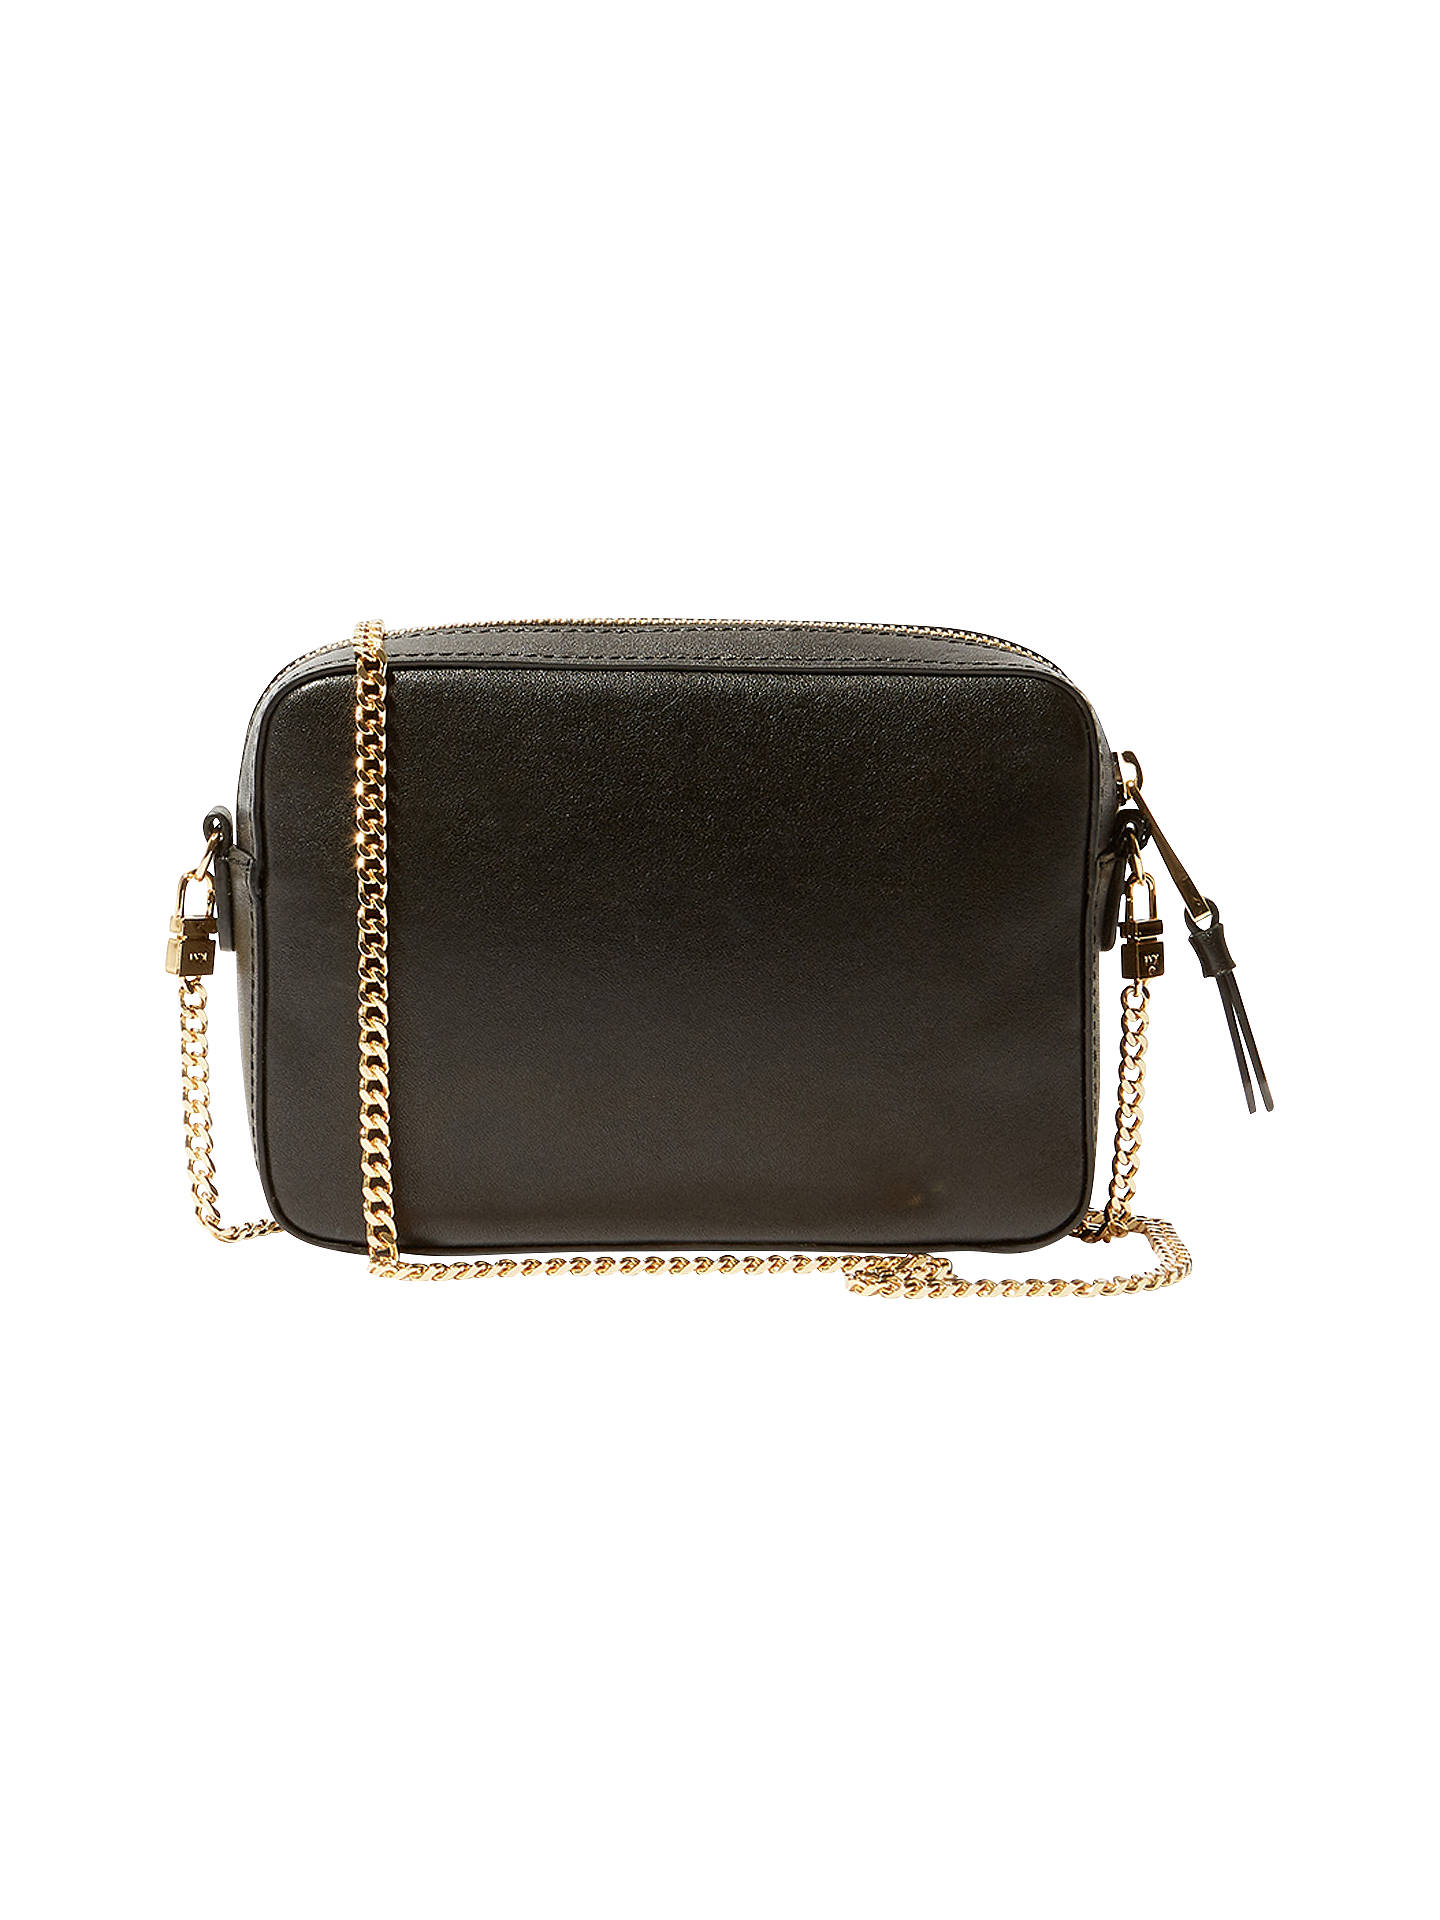 61cc6cac64c Buy Karen Millen Leather Small Cross Body Bag, Black Online at  johnlewis.com ...